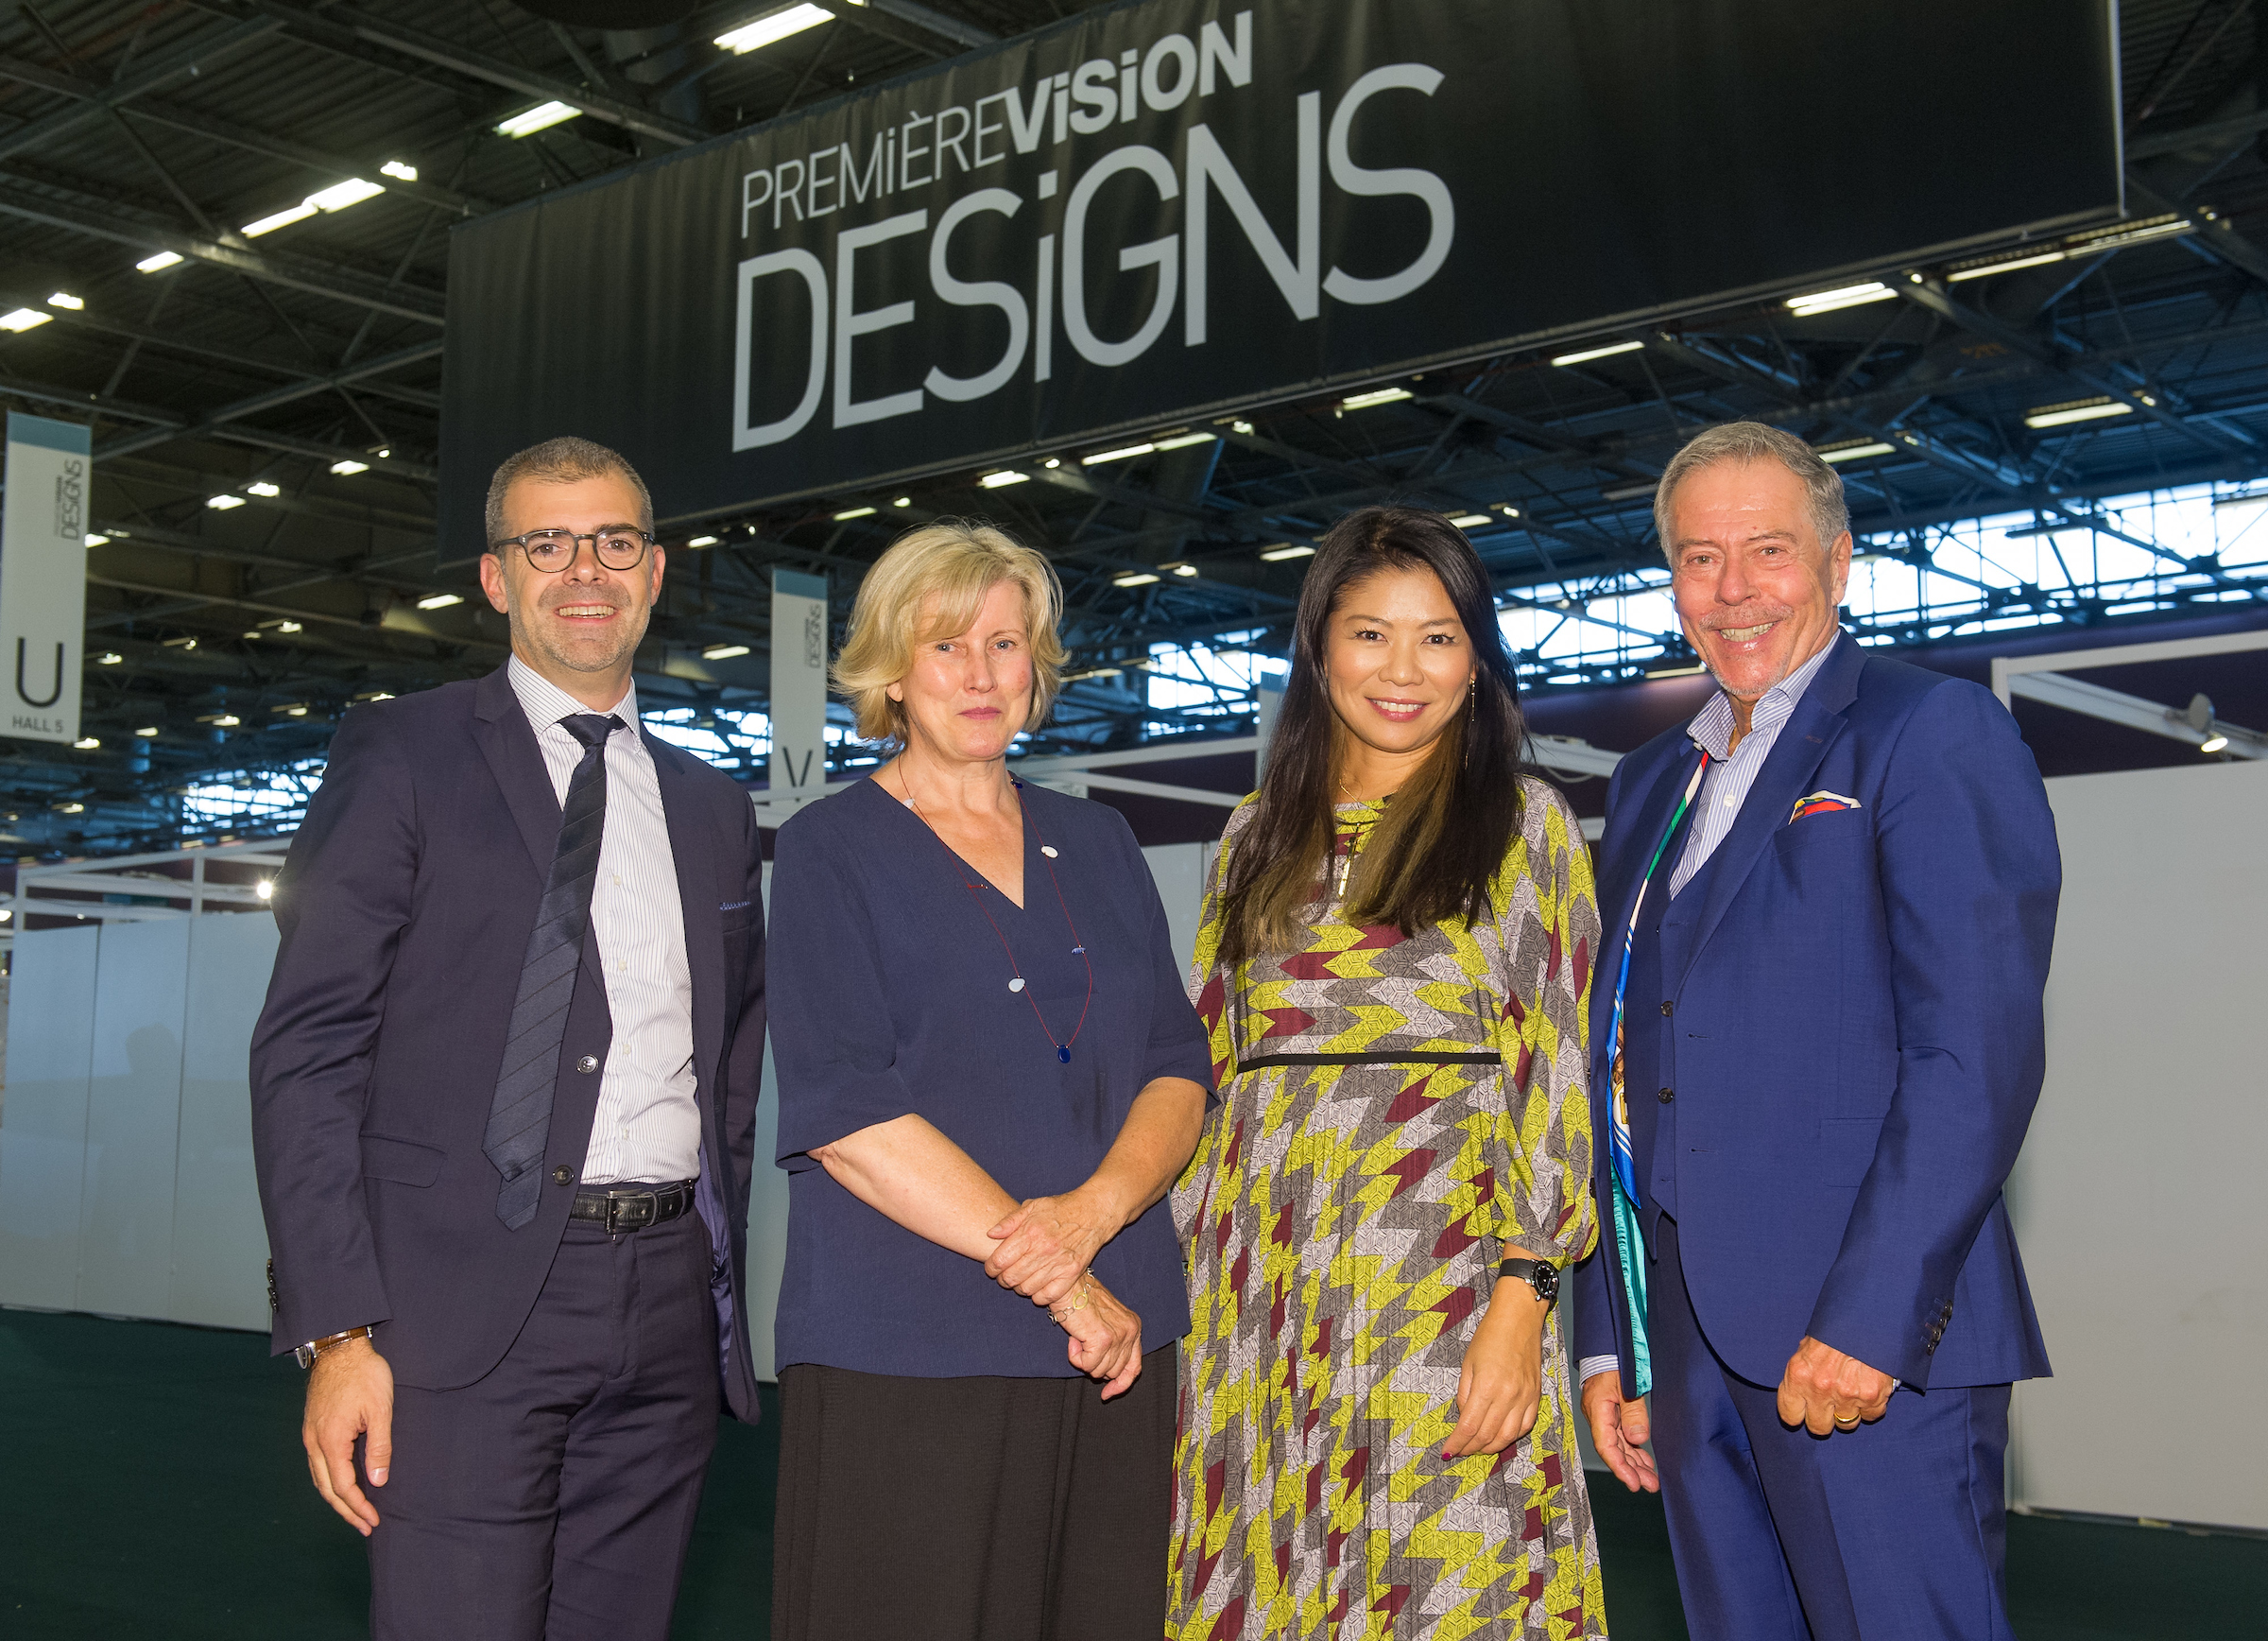 L-R: Gilles Lasbordes, Barbara Kennington, Yuma Koshino, Peter Ring-Leferves Texprint at Premiere Vision, Paris, France